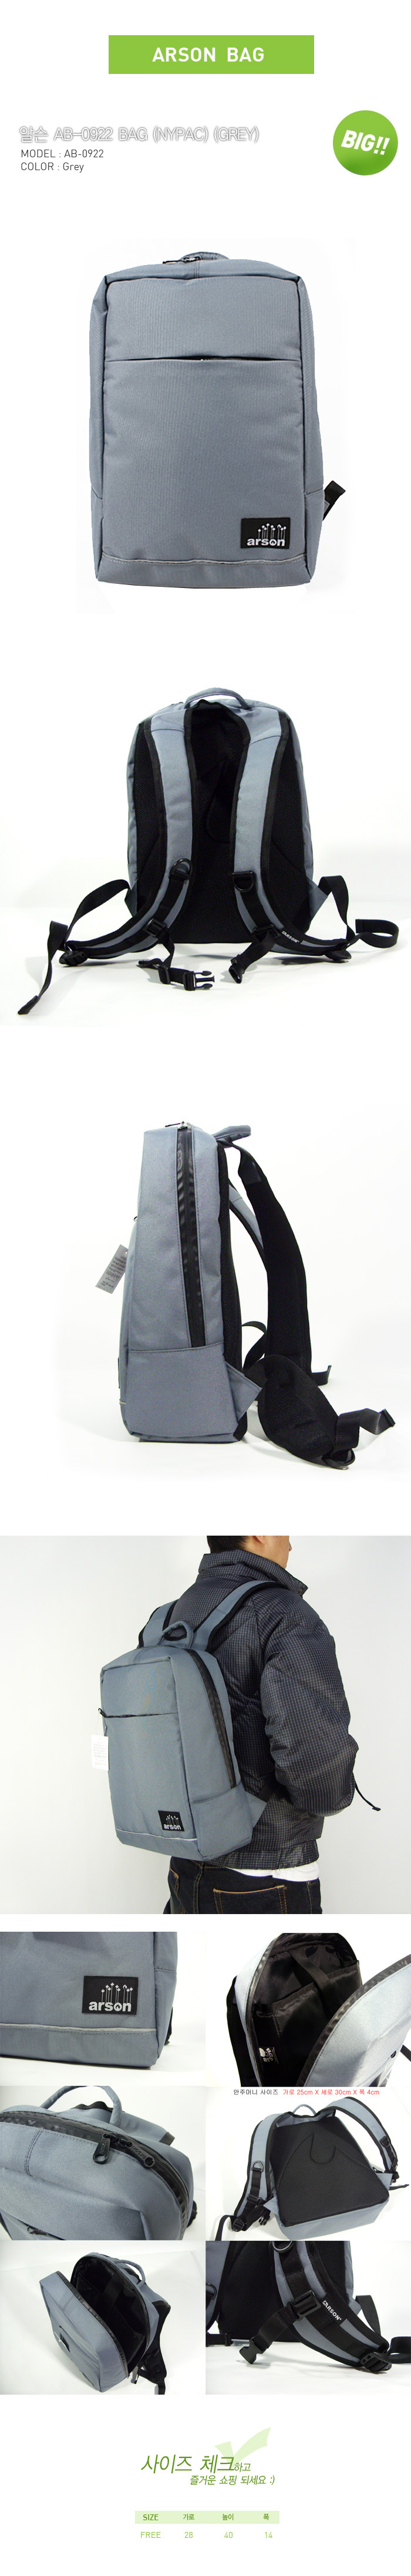 [ ARSON ] AB-0922 Nypac (Gray)/Backpack School Bag